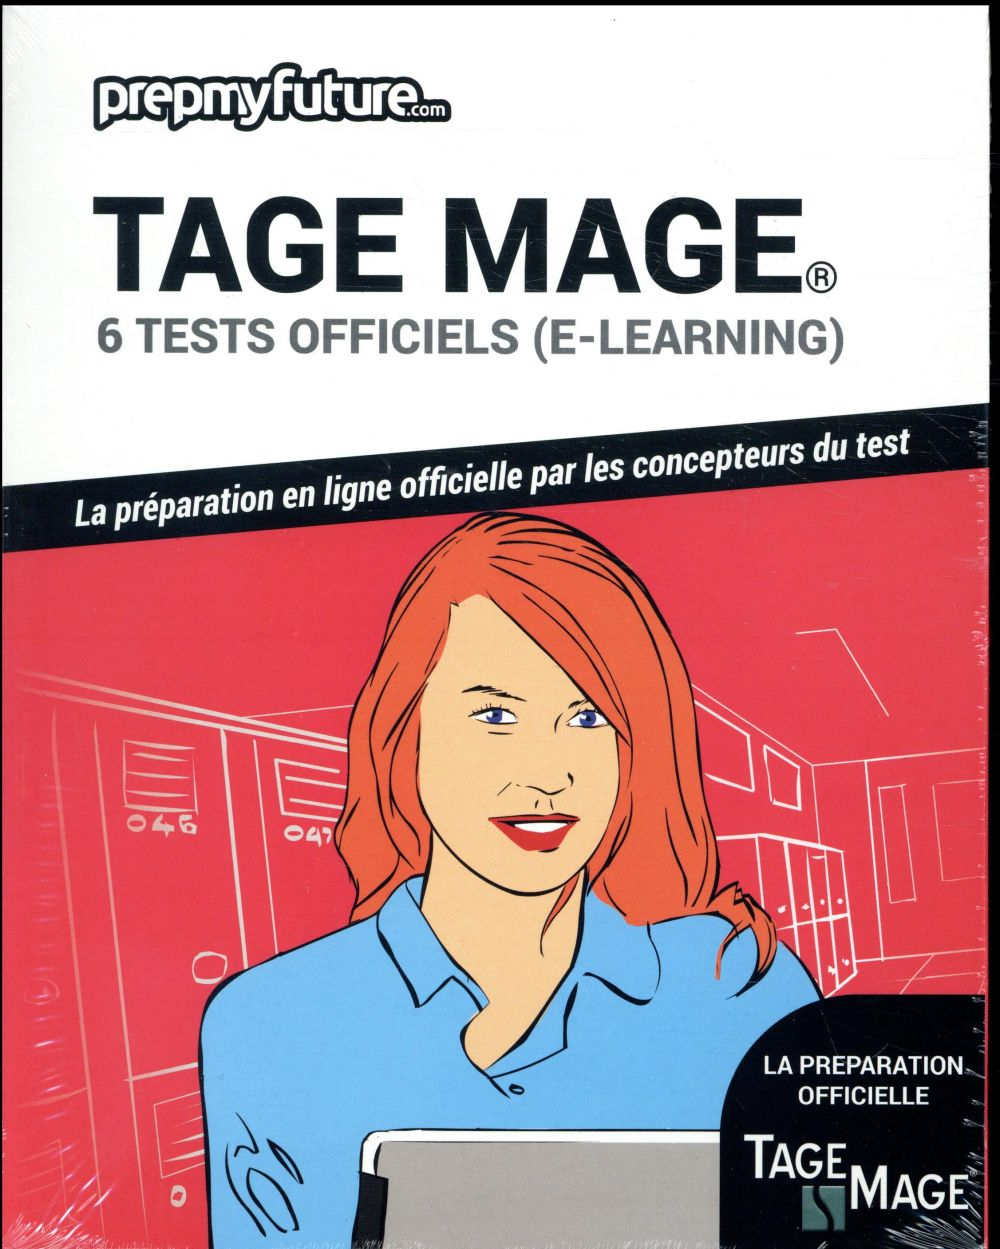 TAGE MAGE® ; 6 tests officiels (e-learning)